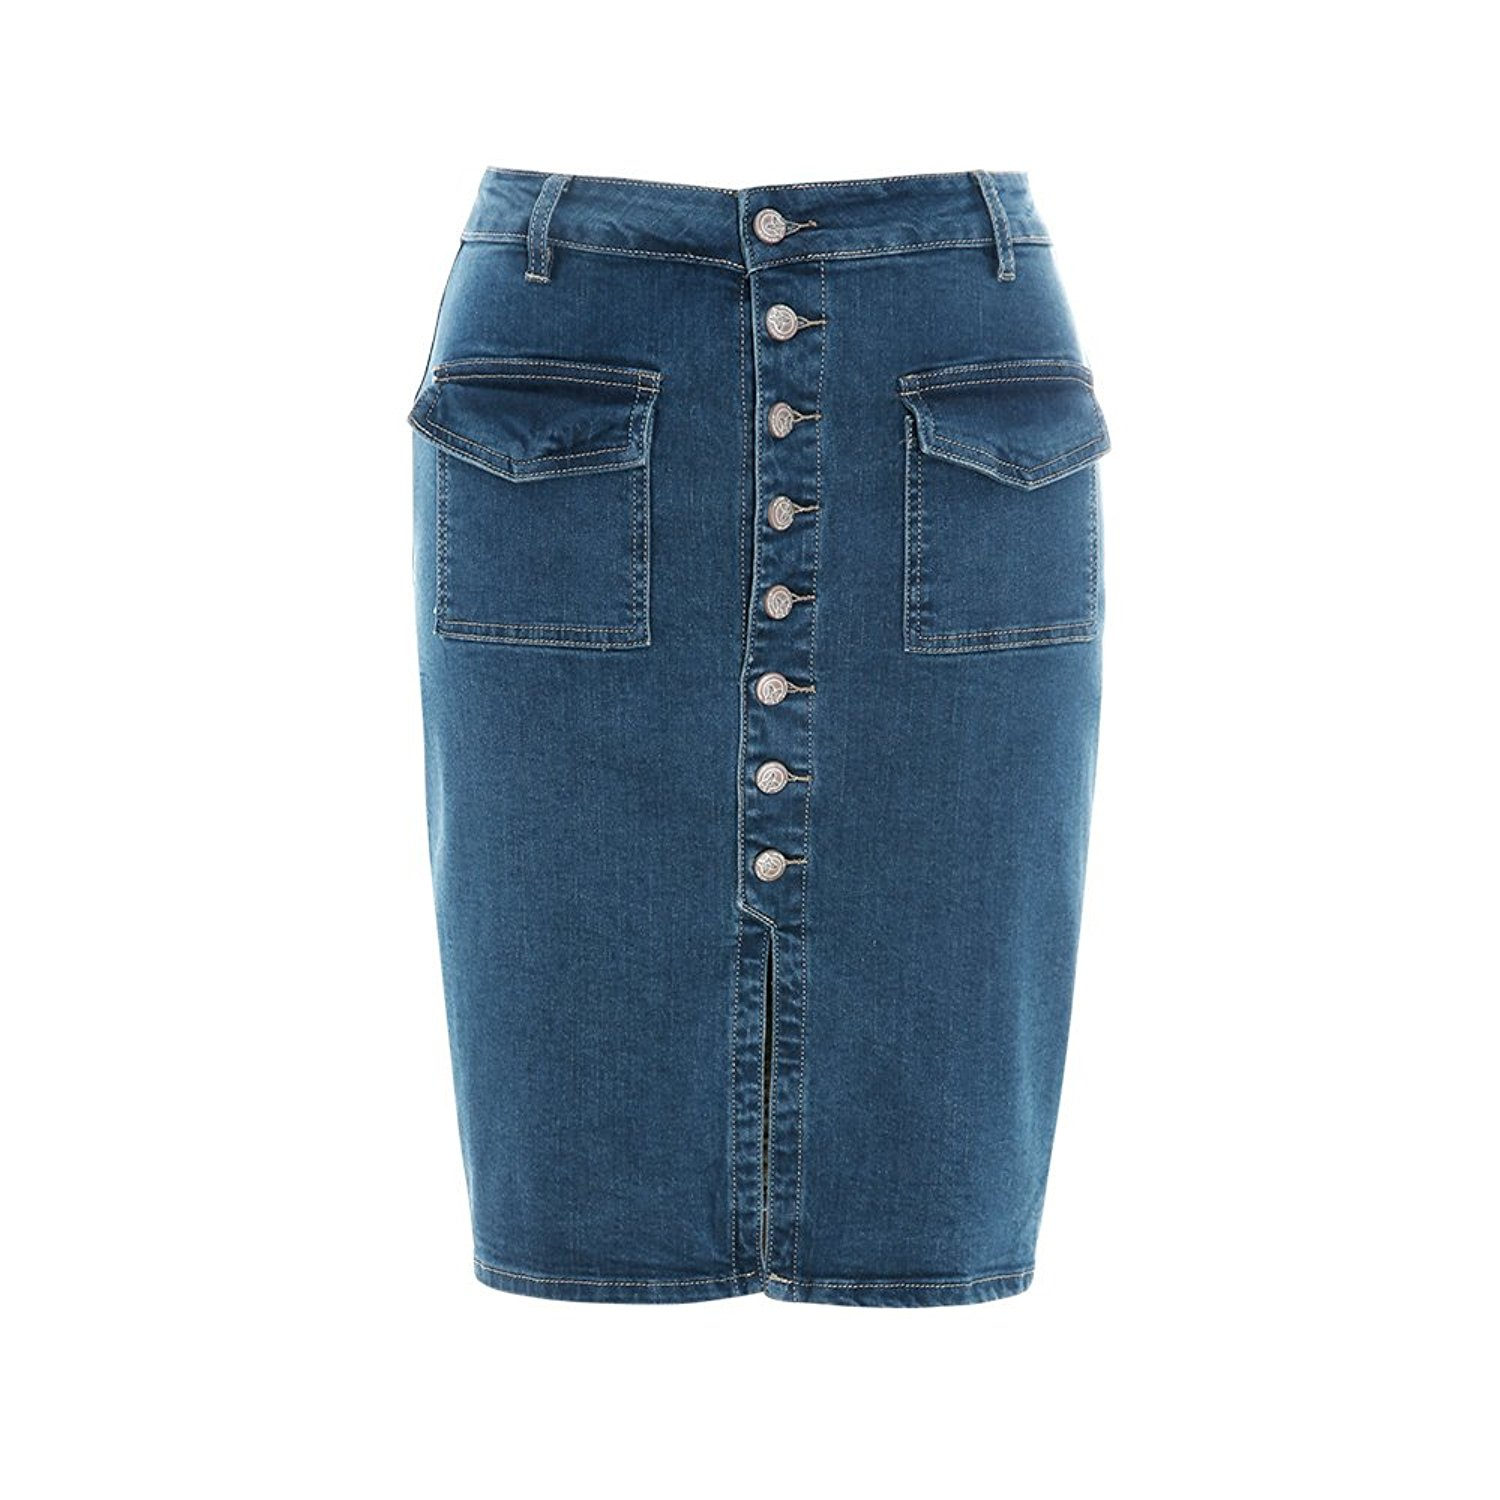 Women's High Waist Distressed Button Front Denim Skirt knee Length ...